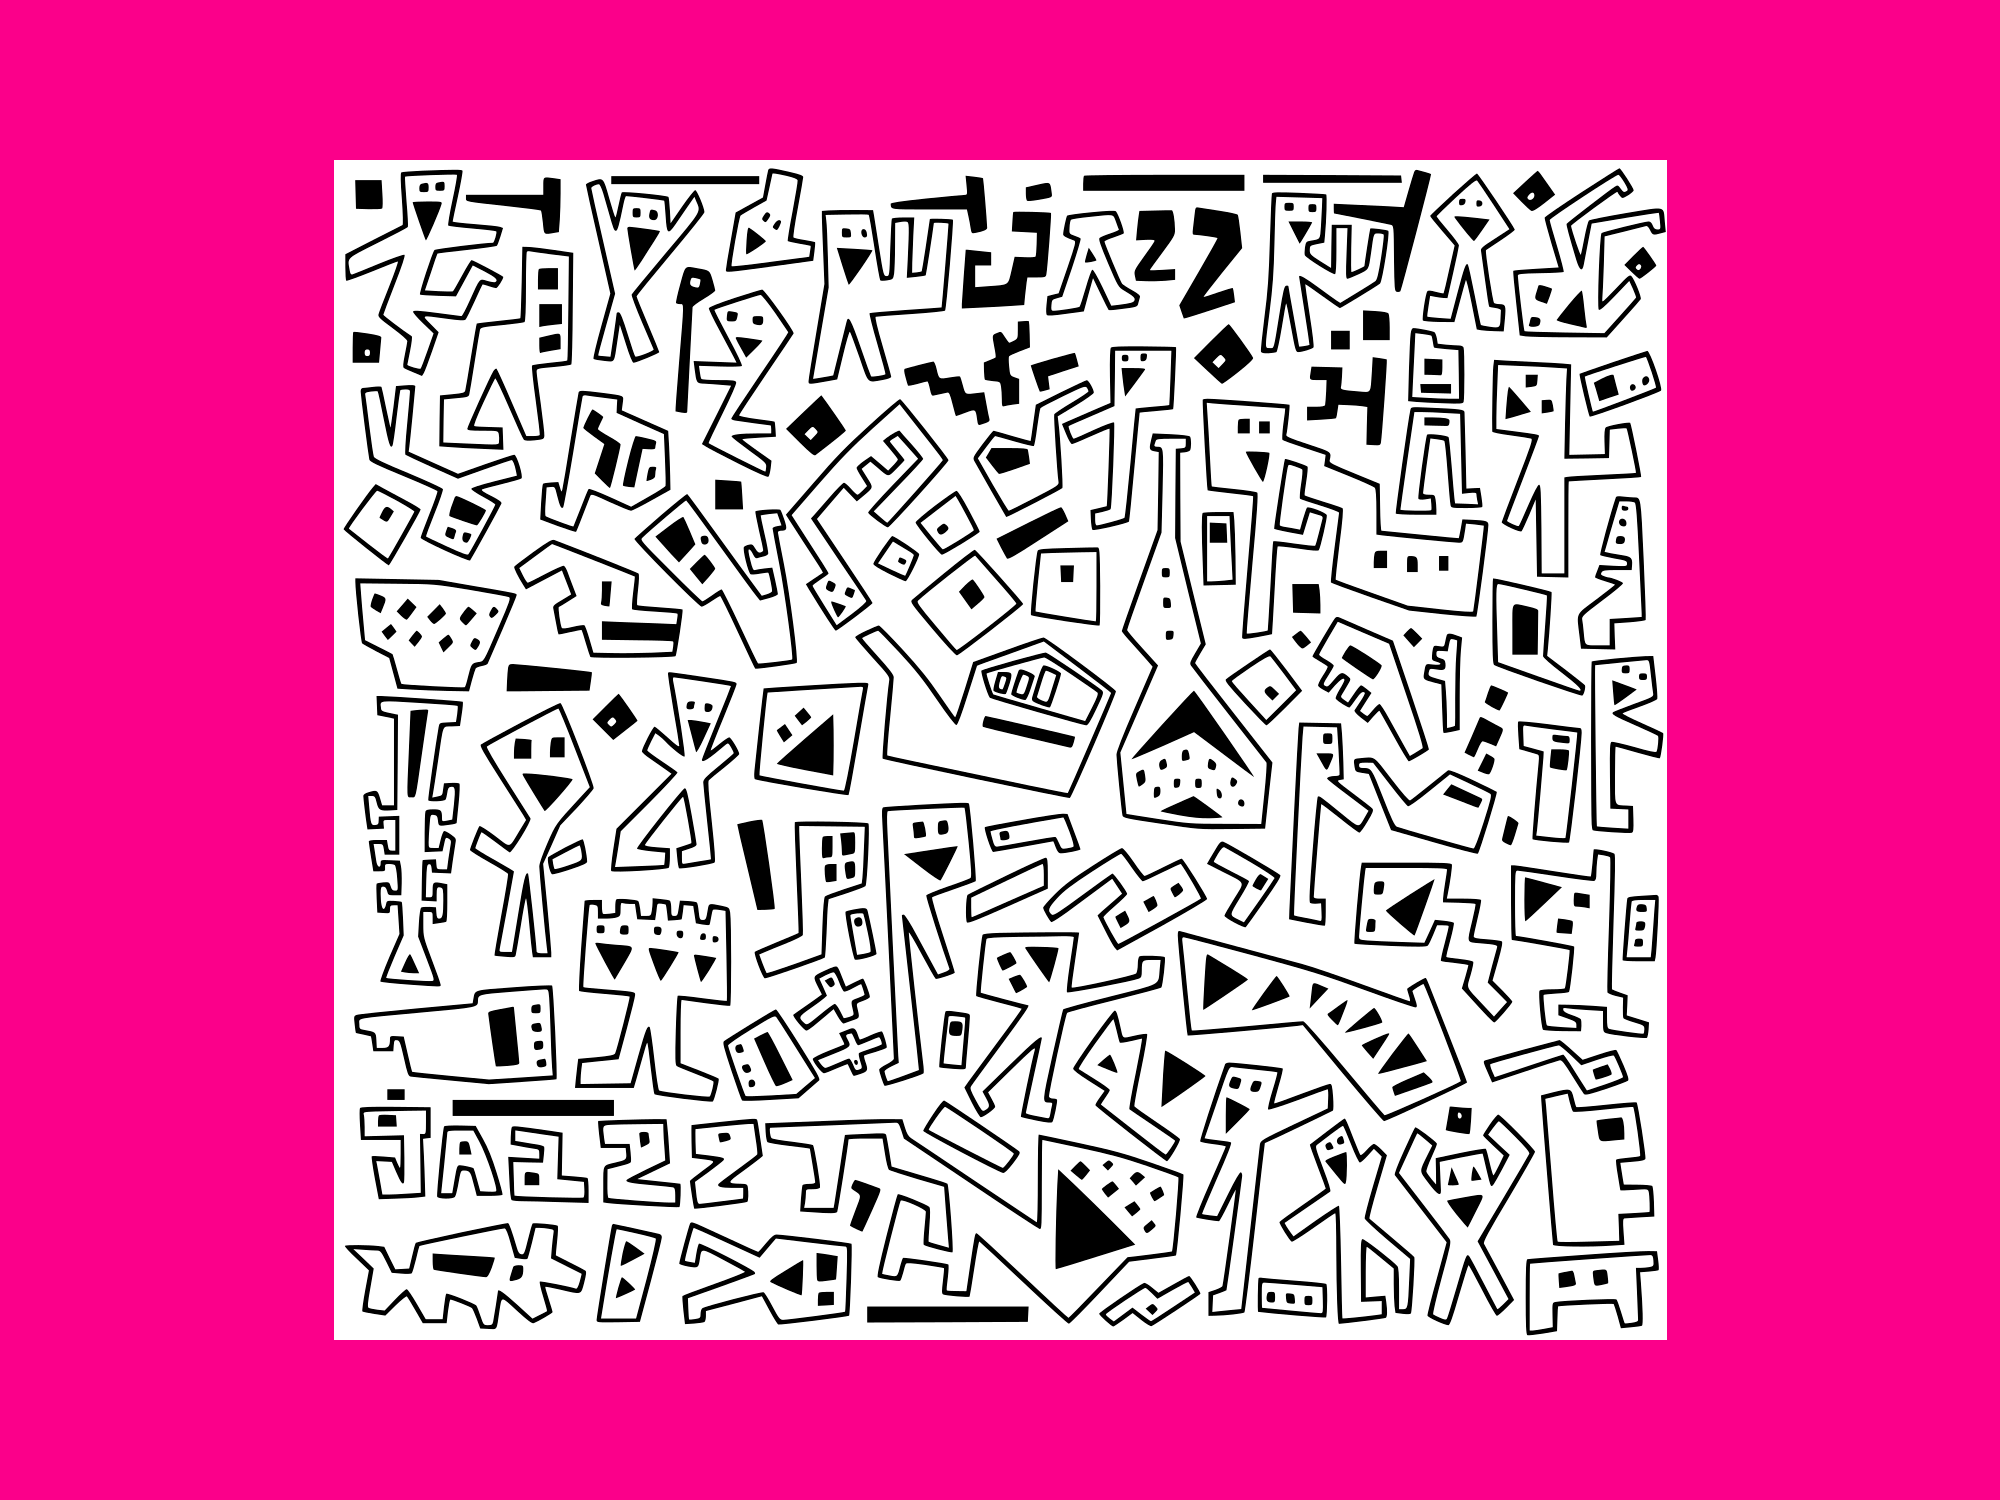 Download Free Jazz Doodles 3 Graphic By Anrasoft Creative Fabrica for Cricut Explore, Silhouette and other cutting machines.